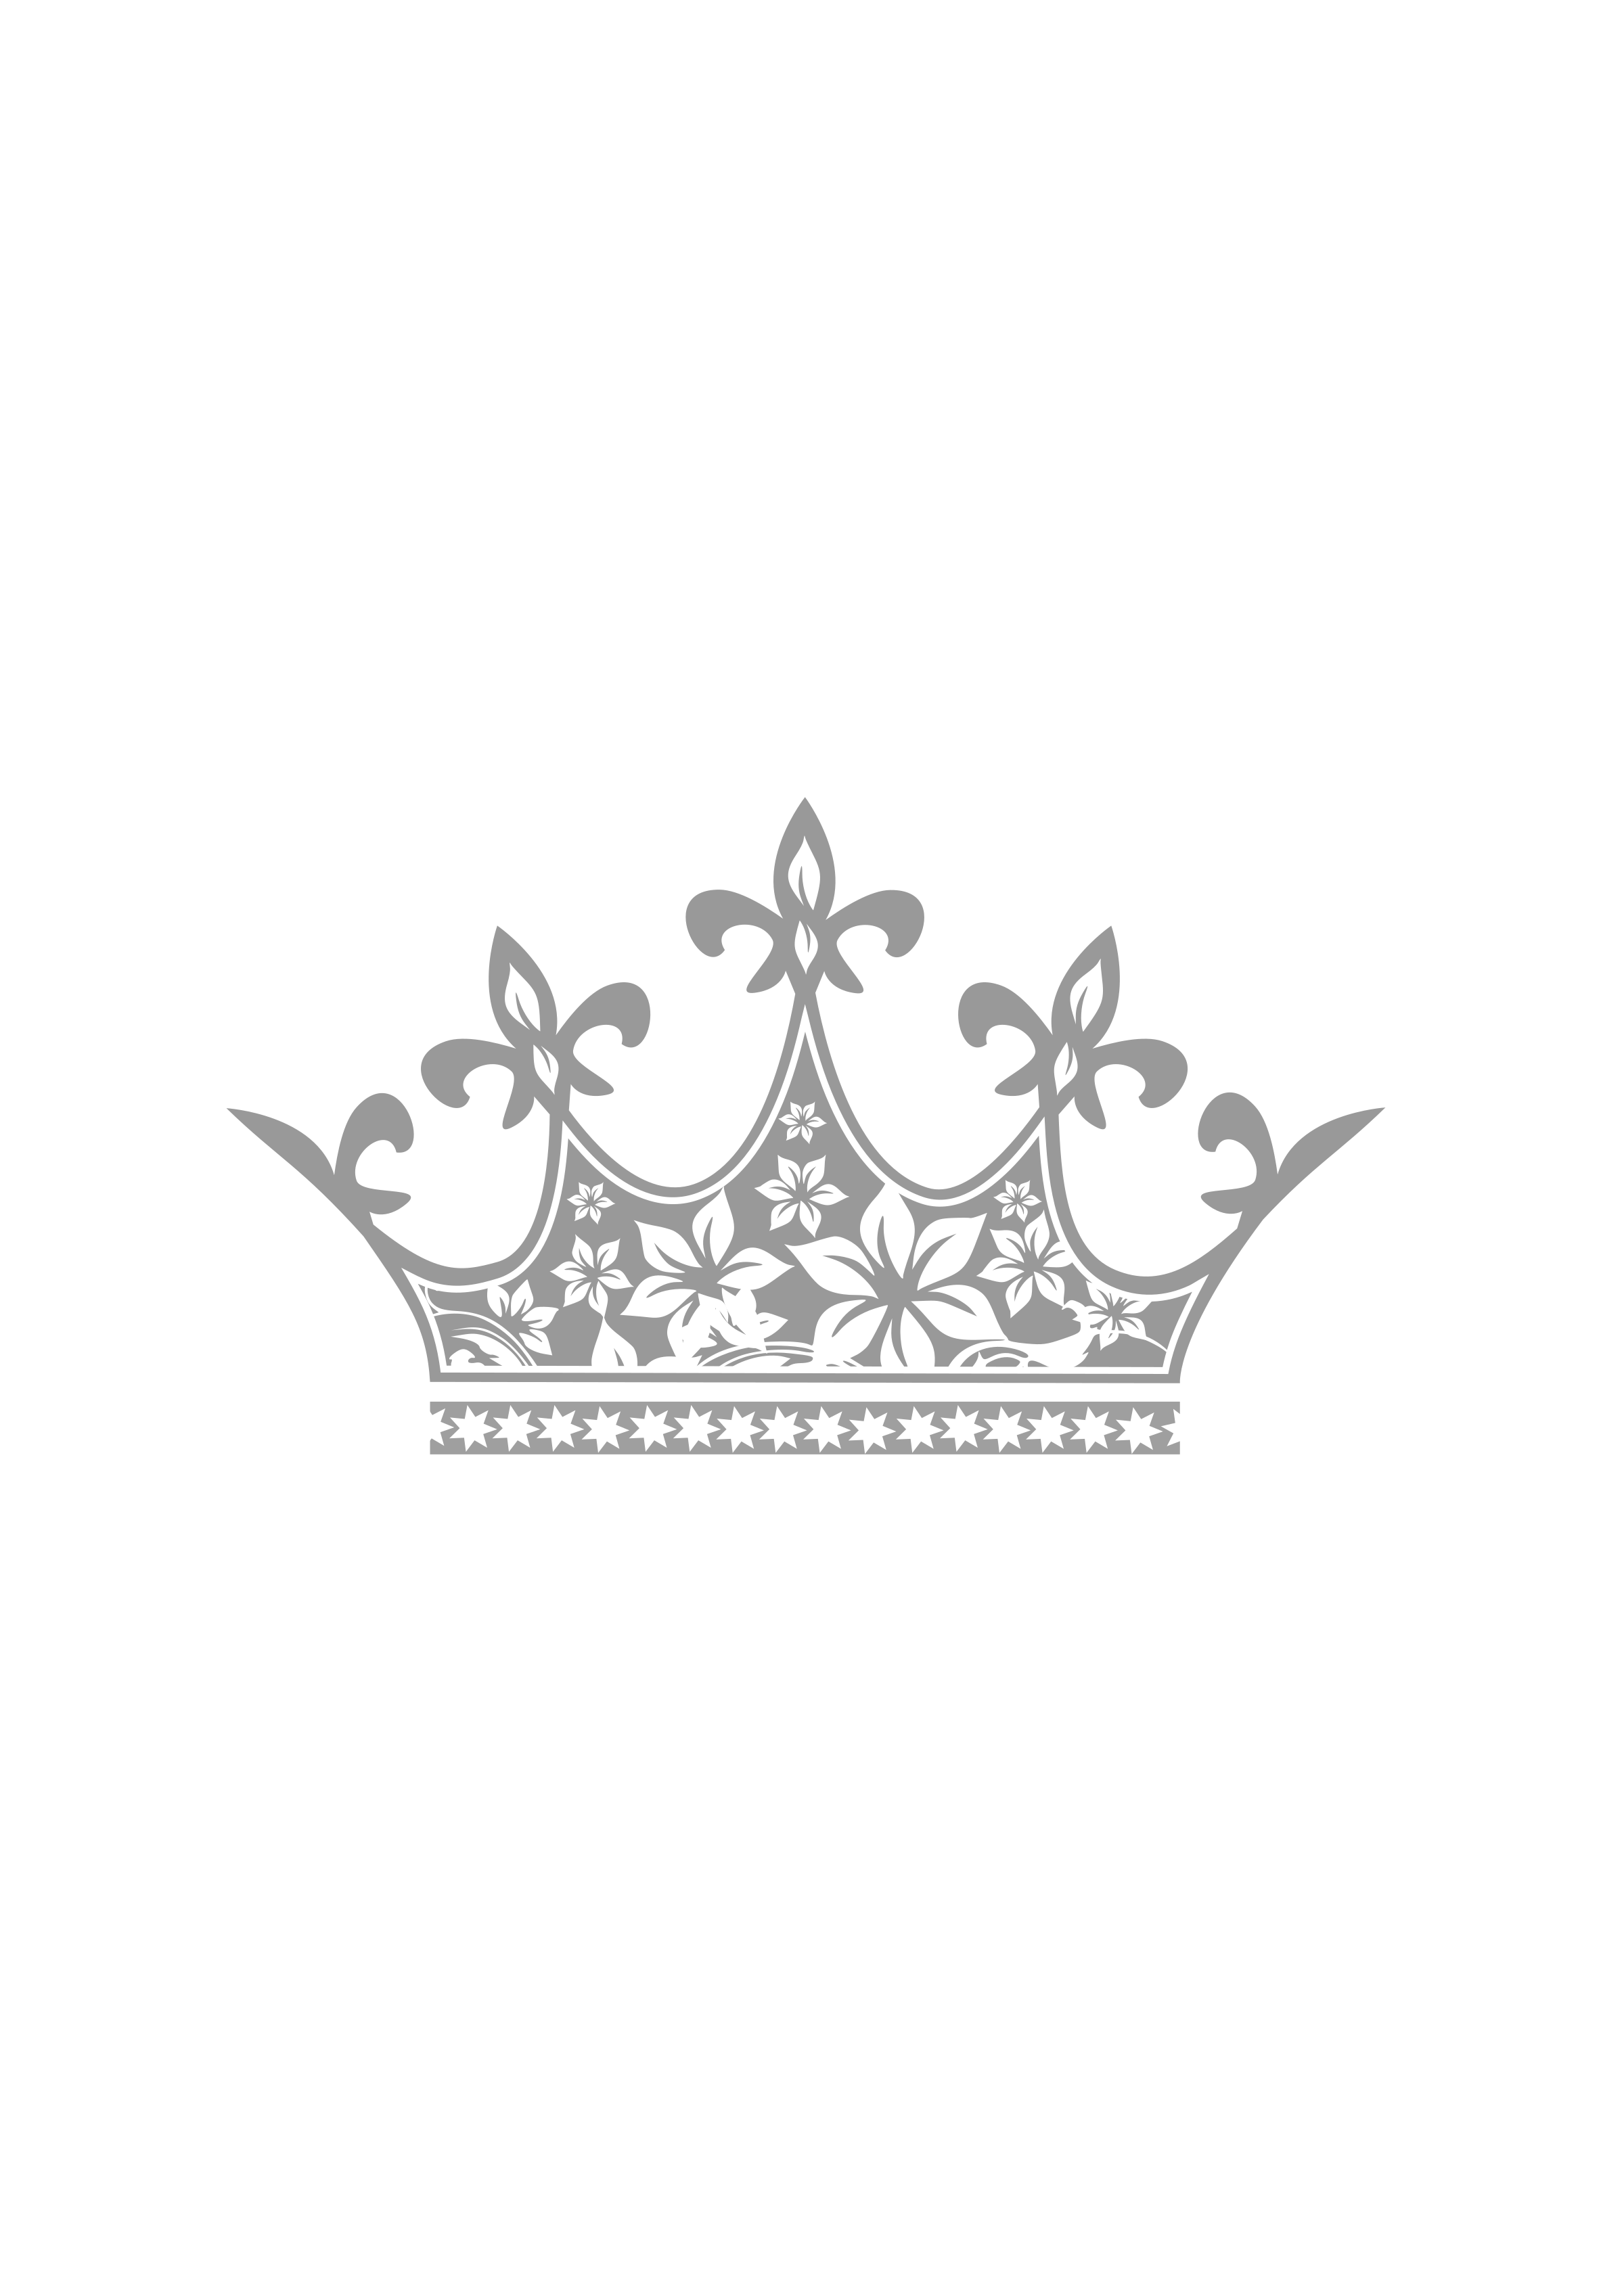 Crown by alexiofx